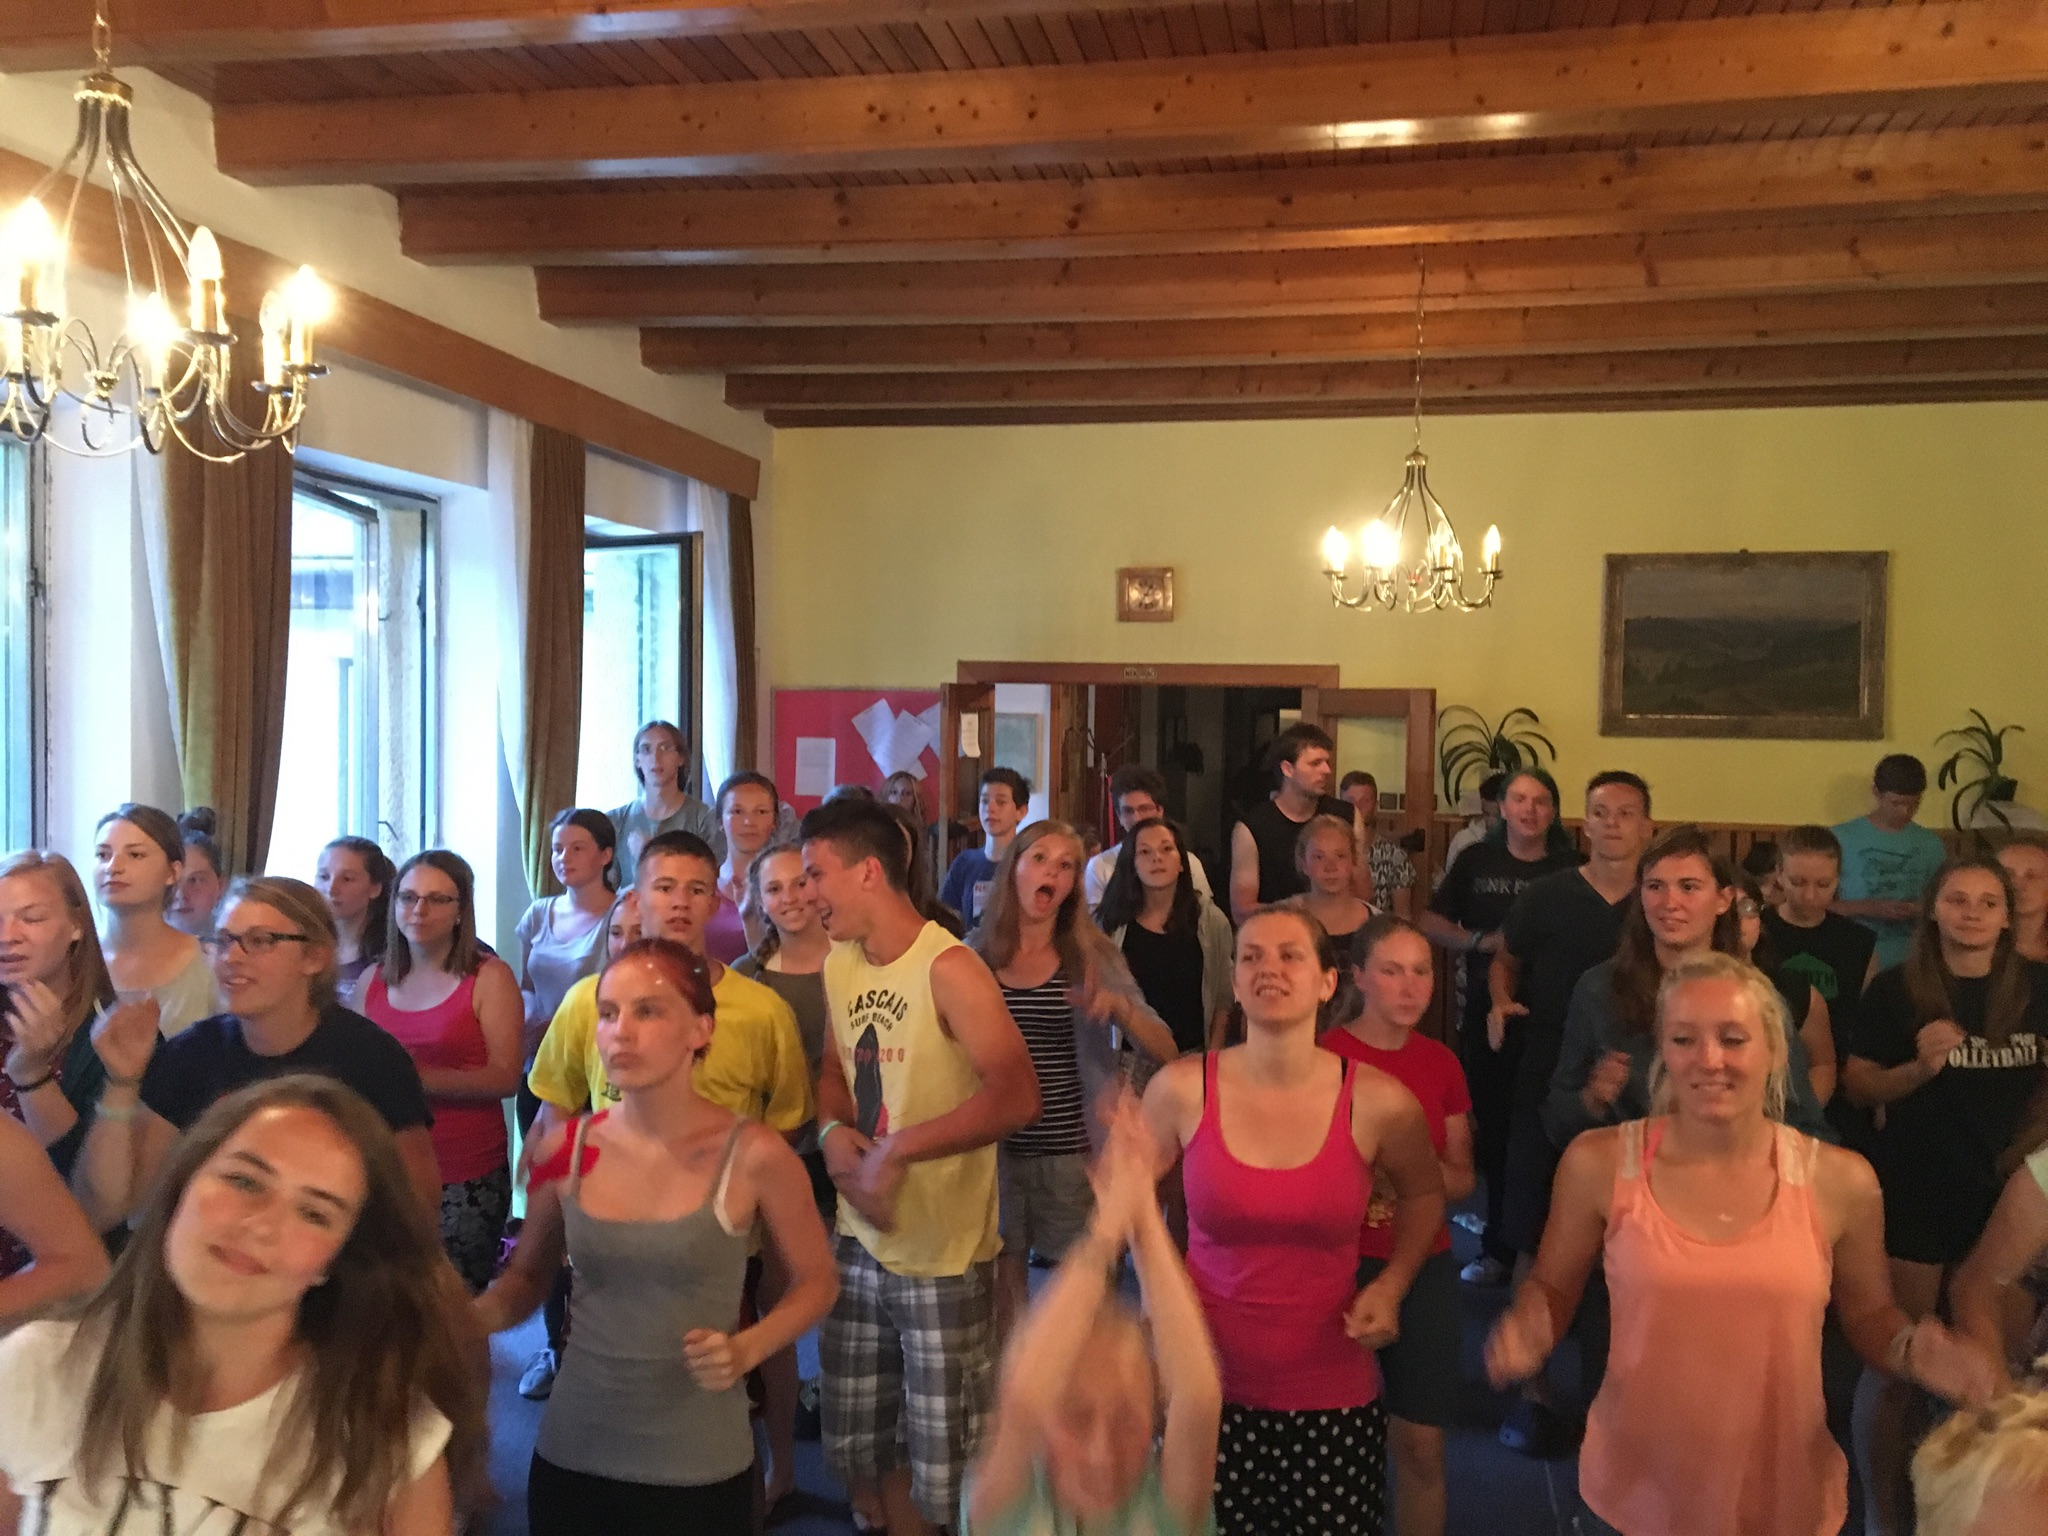 Everyone doing the camp dance at our evening gathering.